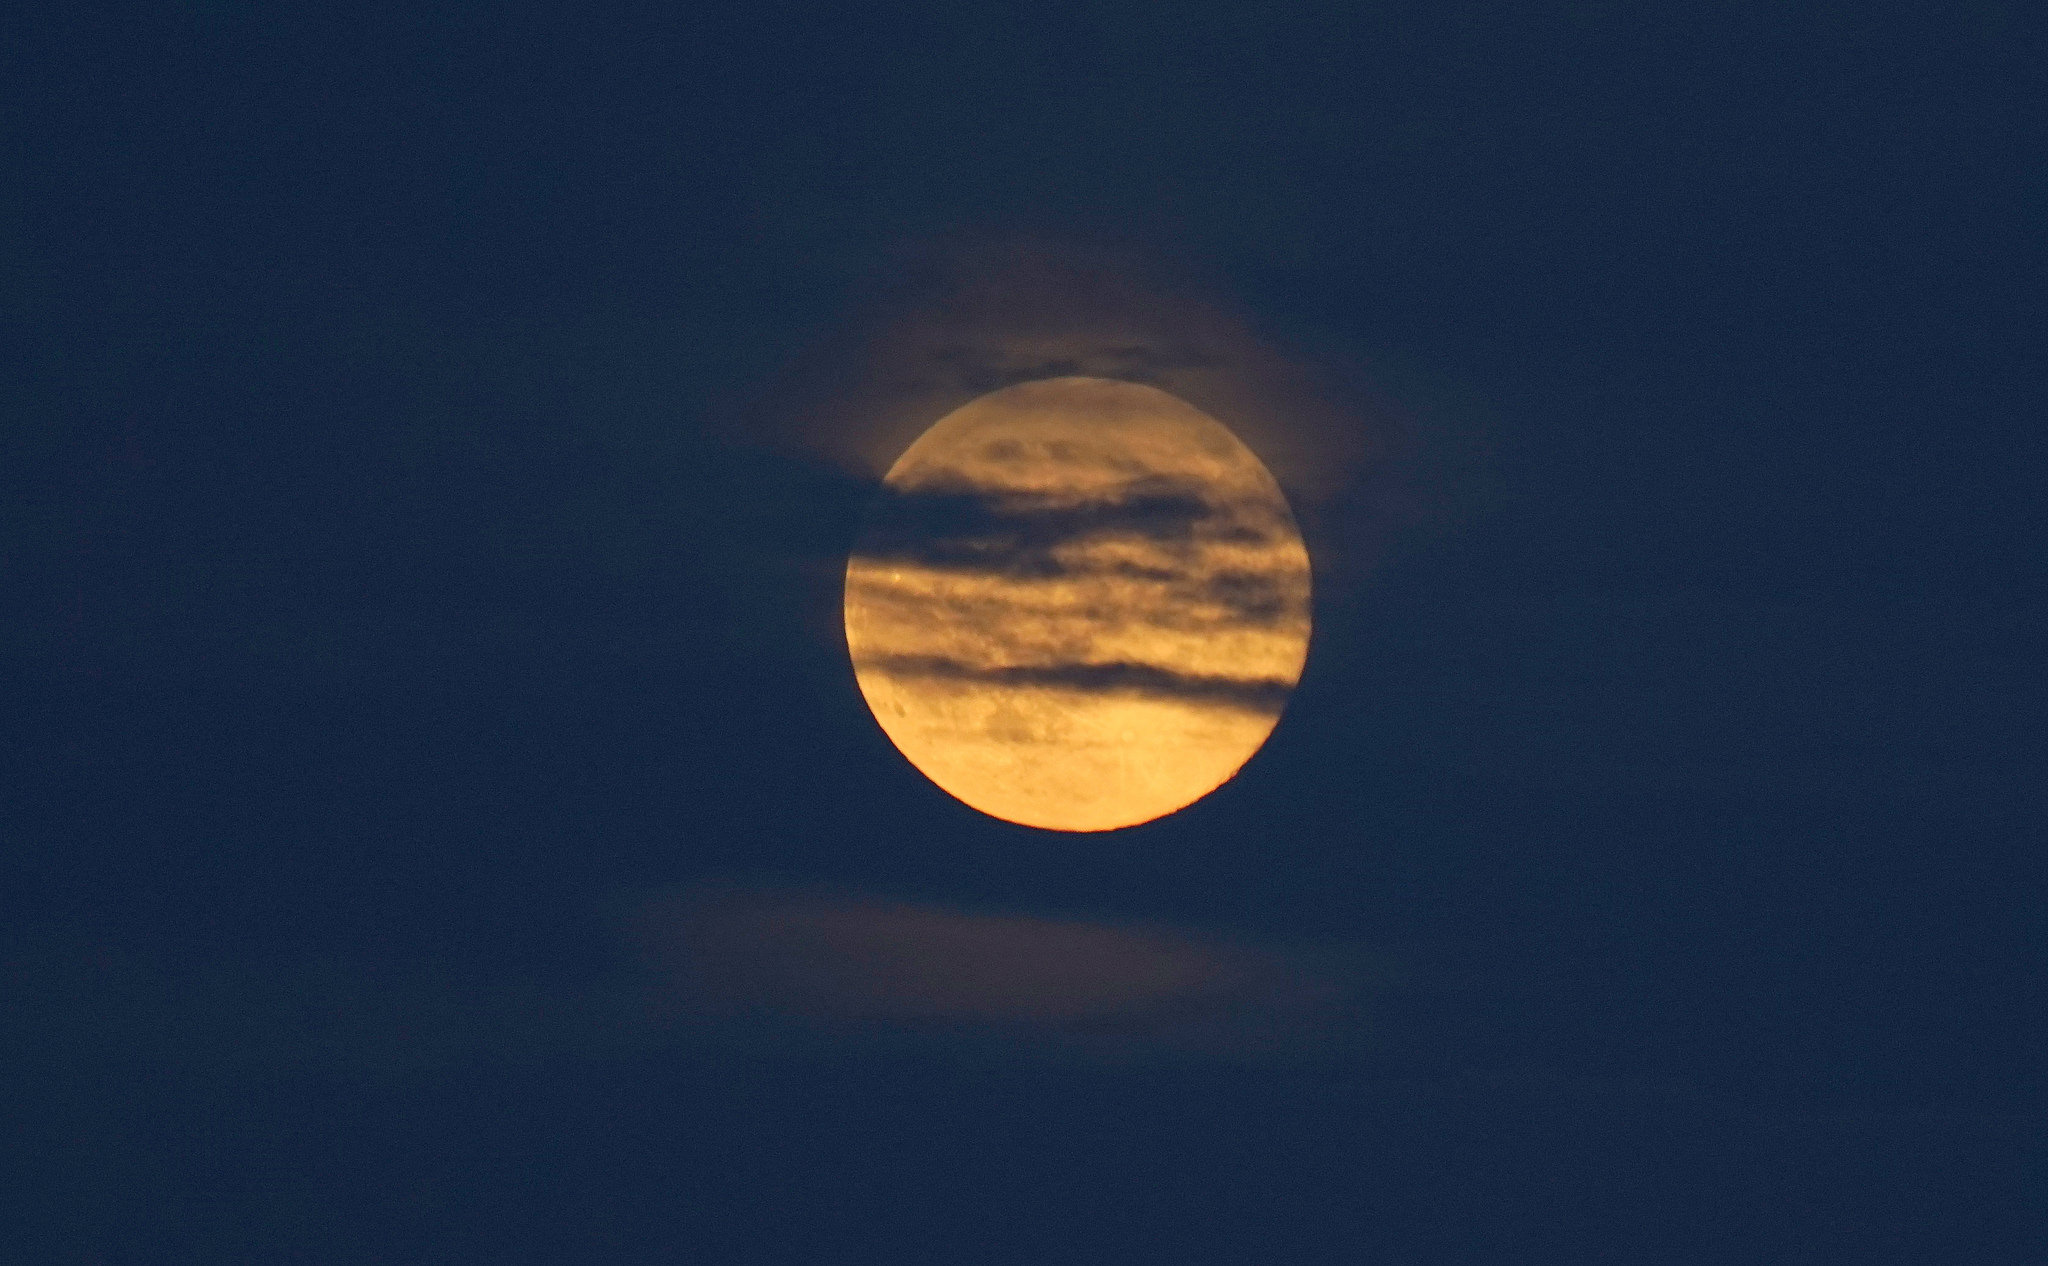 Clear skies predicted for tonight's Full Buck Moon